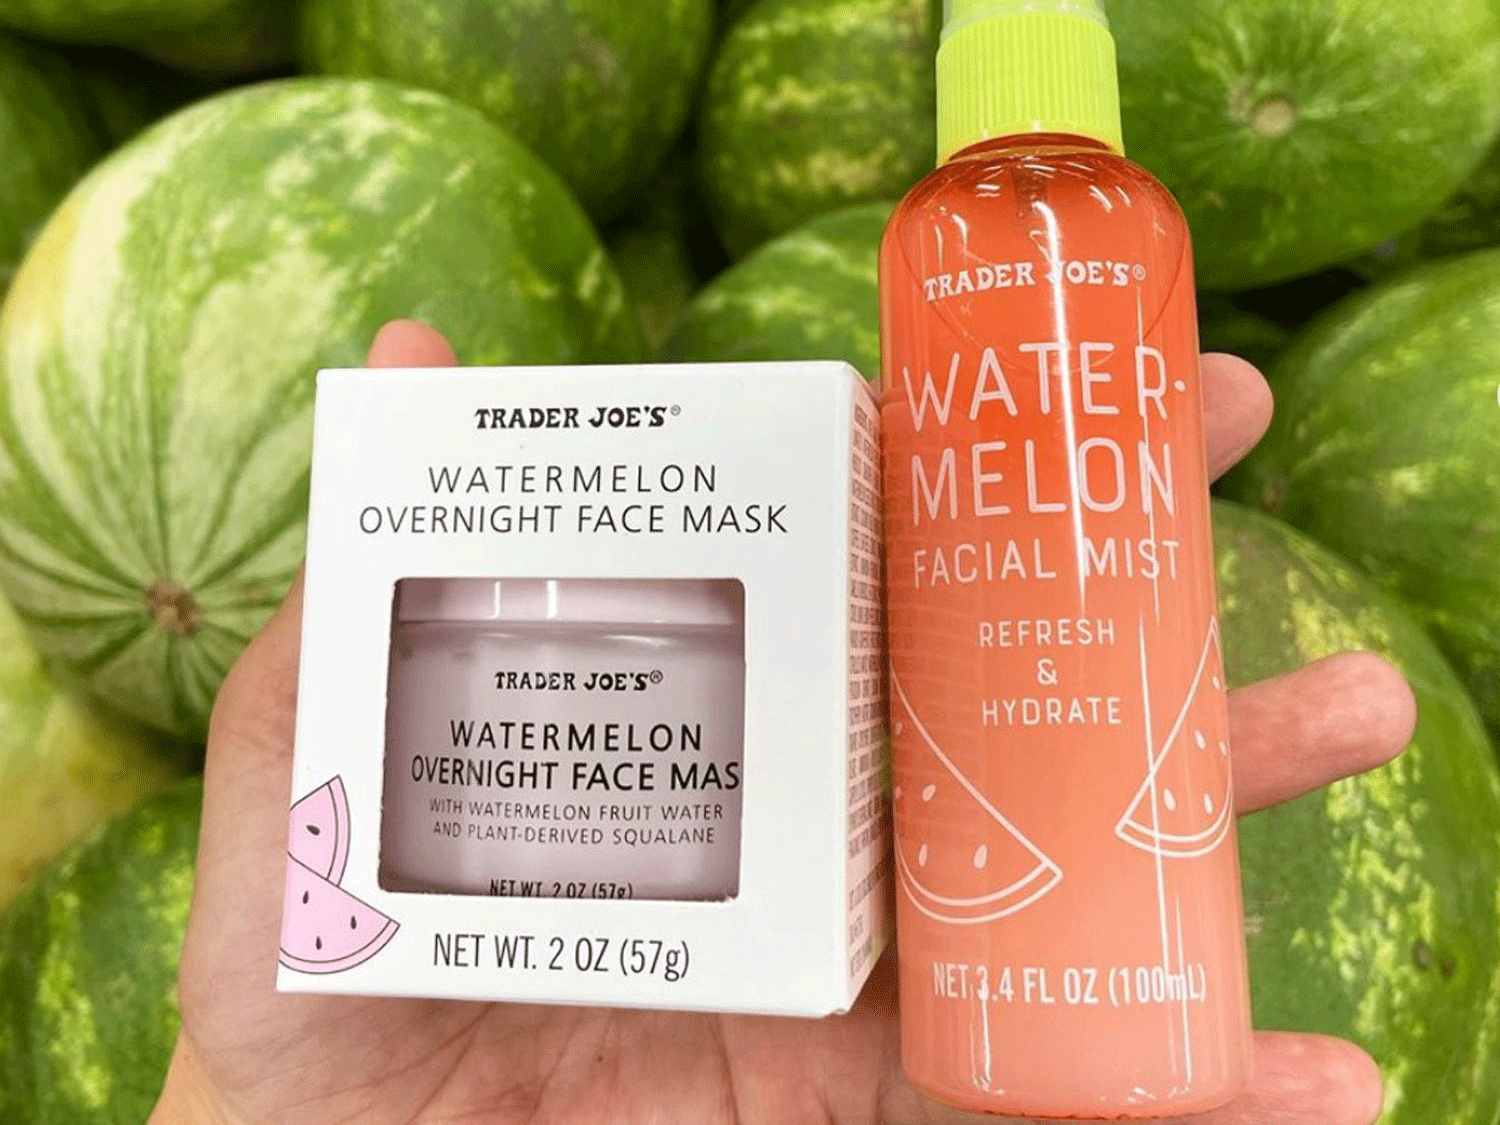 Trader Joe's Watermelon Skincare Line Is Here to Hydrate Your Parched Skin This Summer